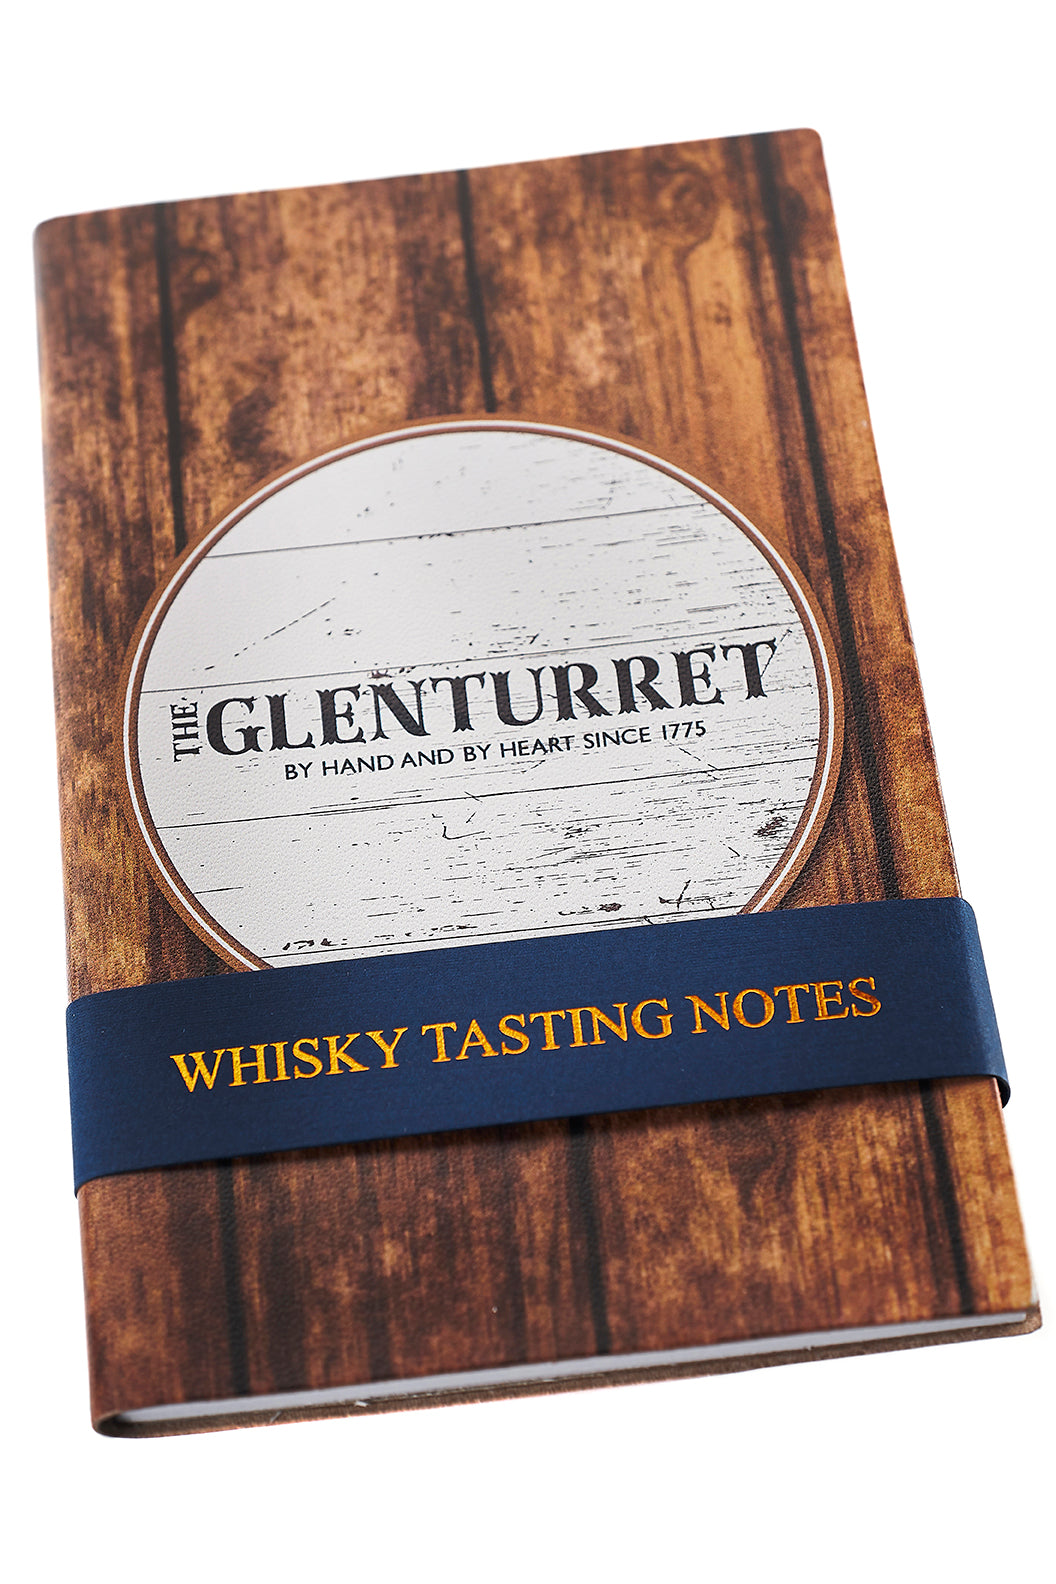 The Glenturret Whisky Tasting Notebook